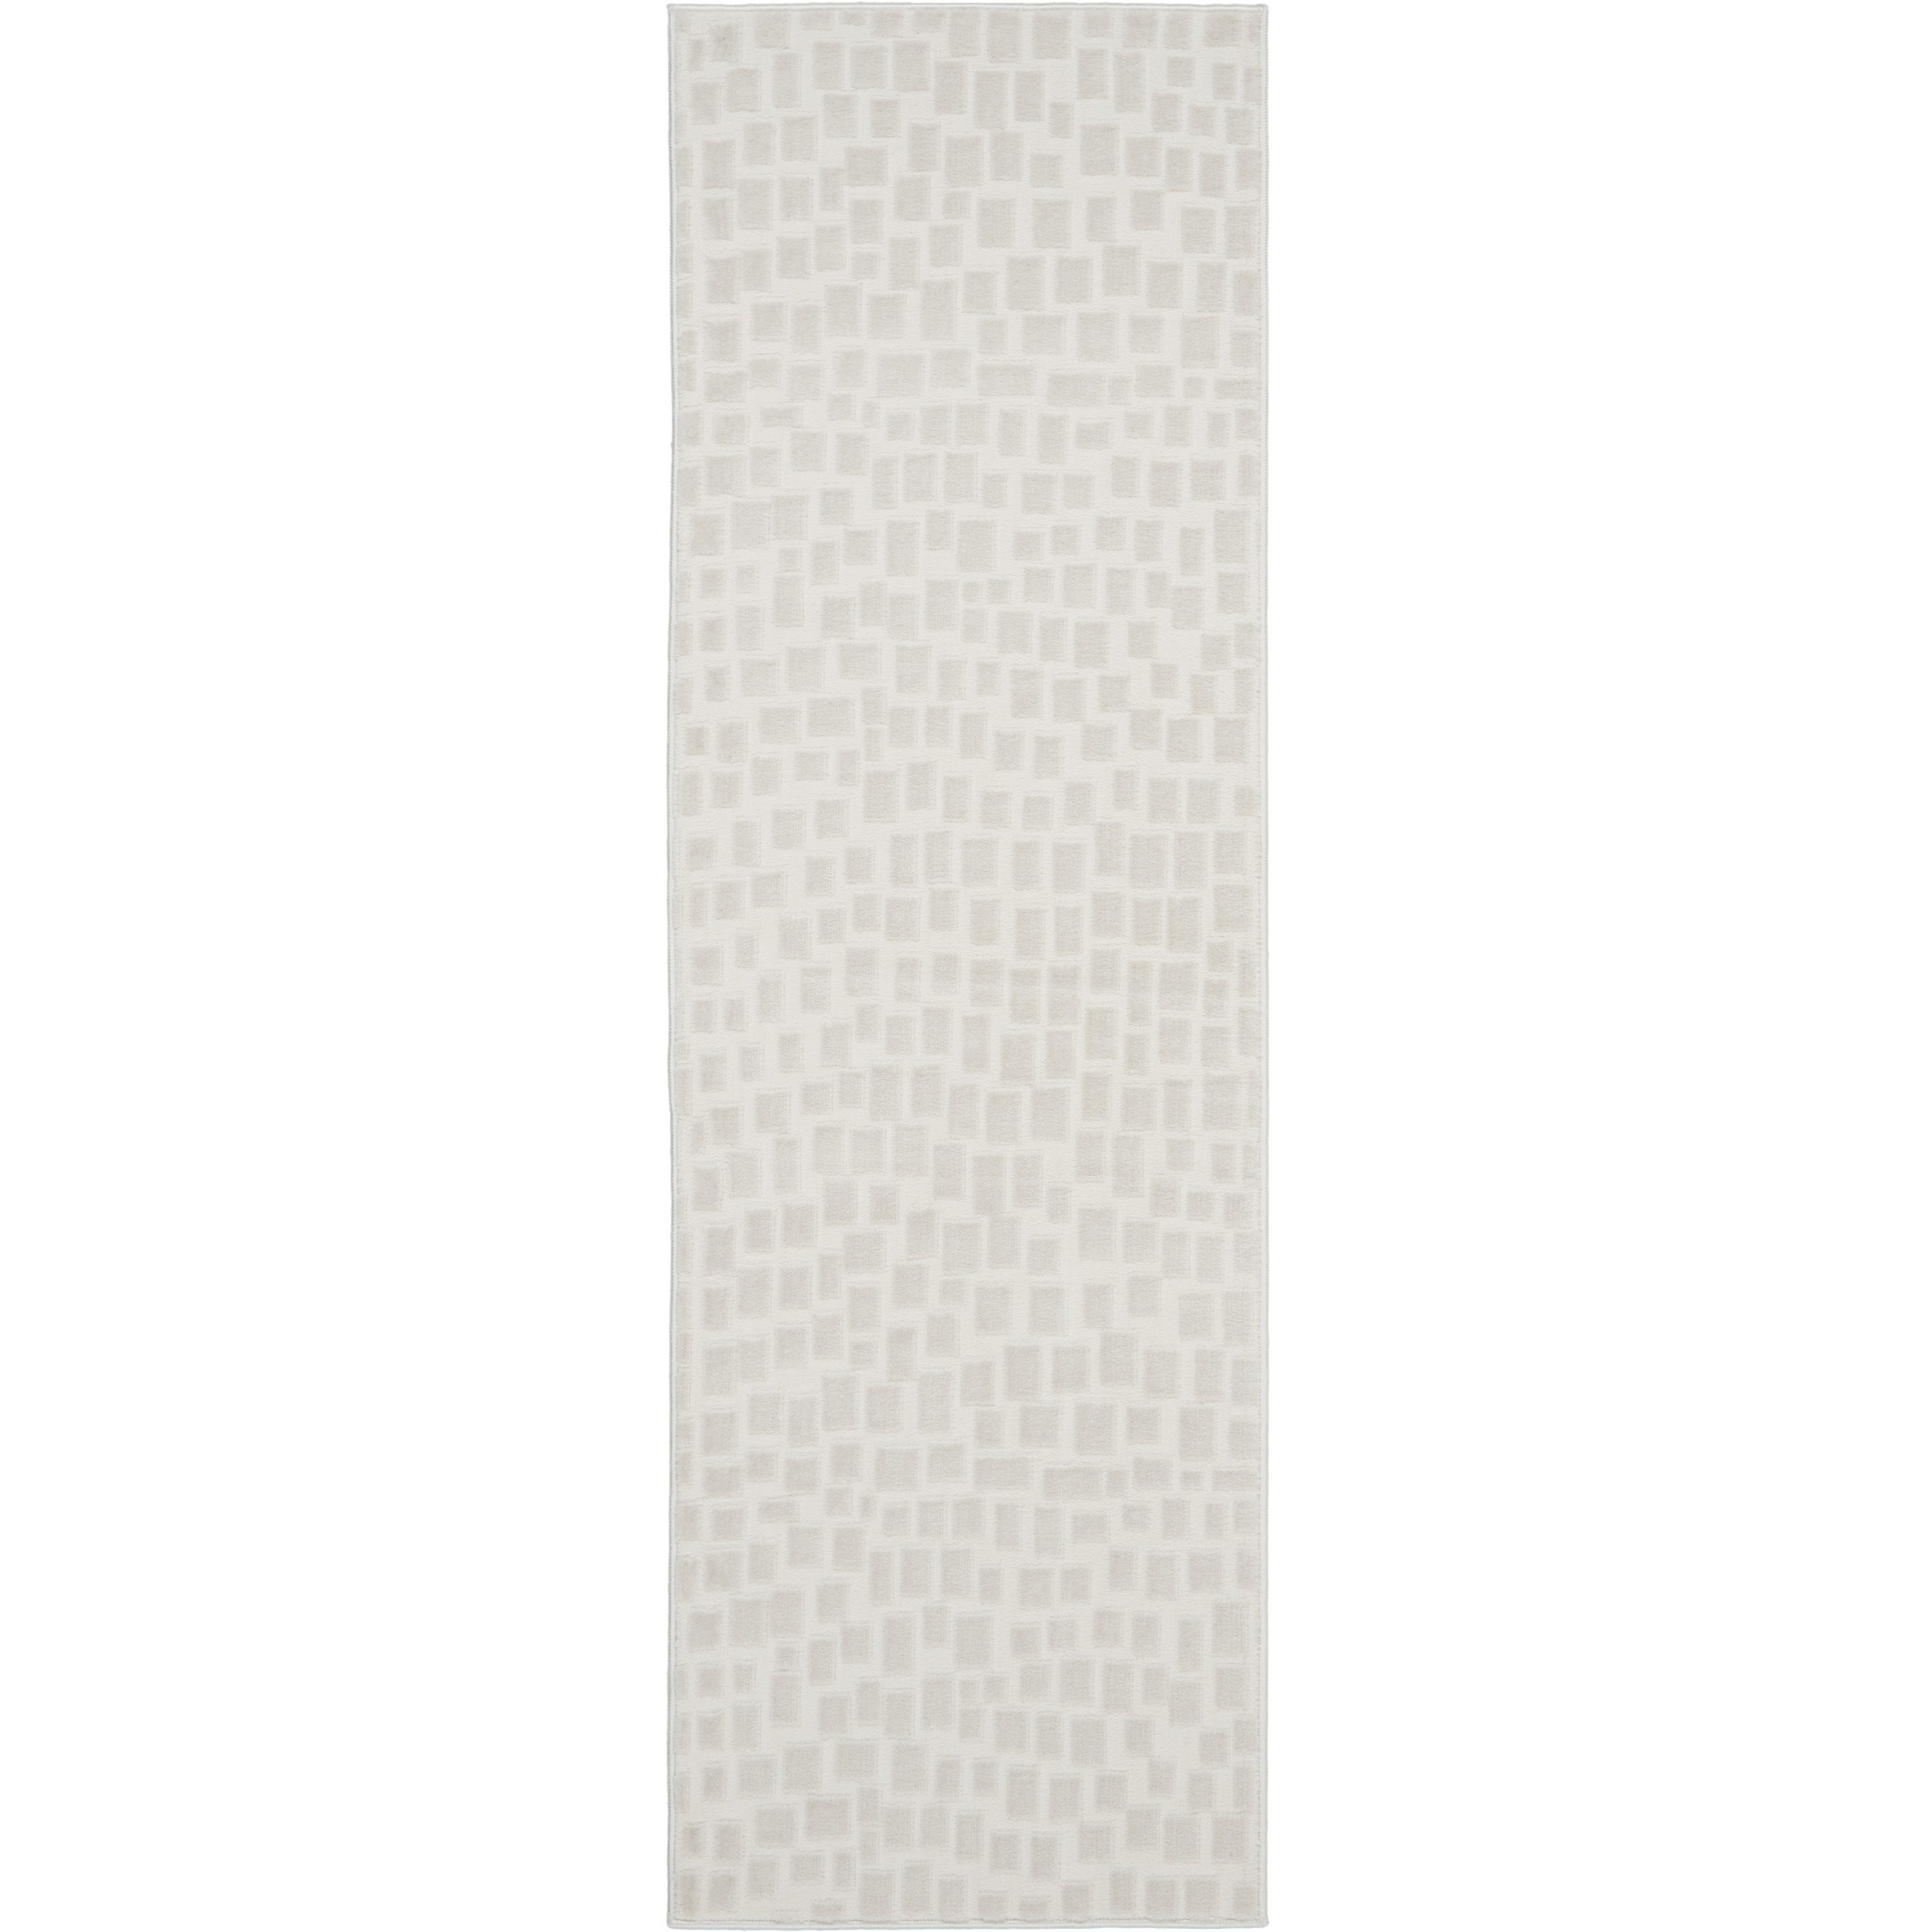 Urban Chic 2020 7' Runner Rug by Nourison at Home Collections Furniture